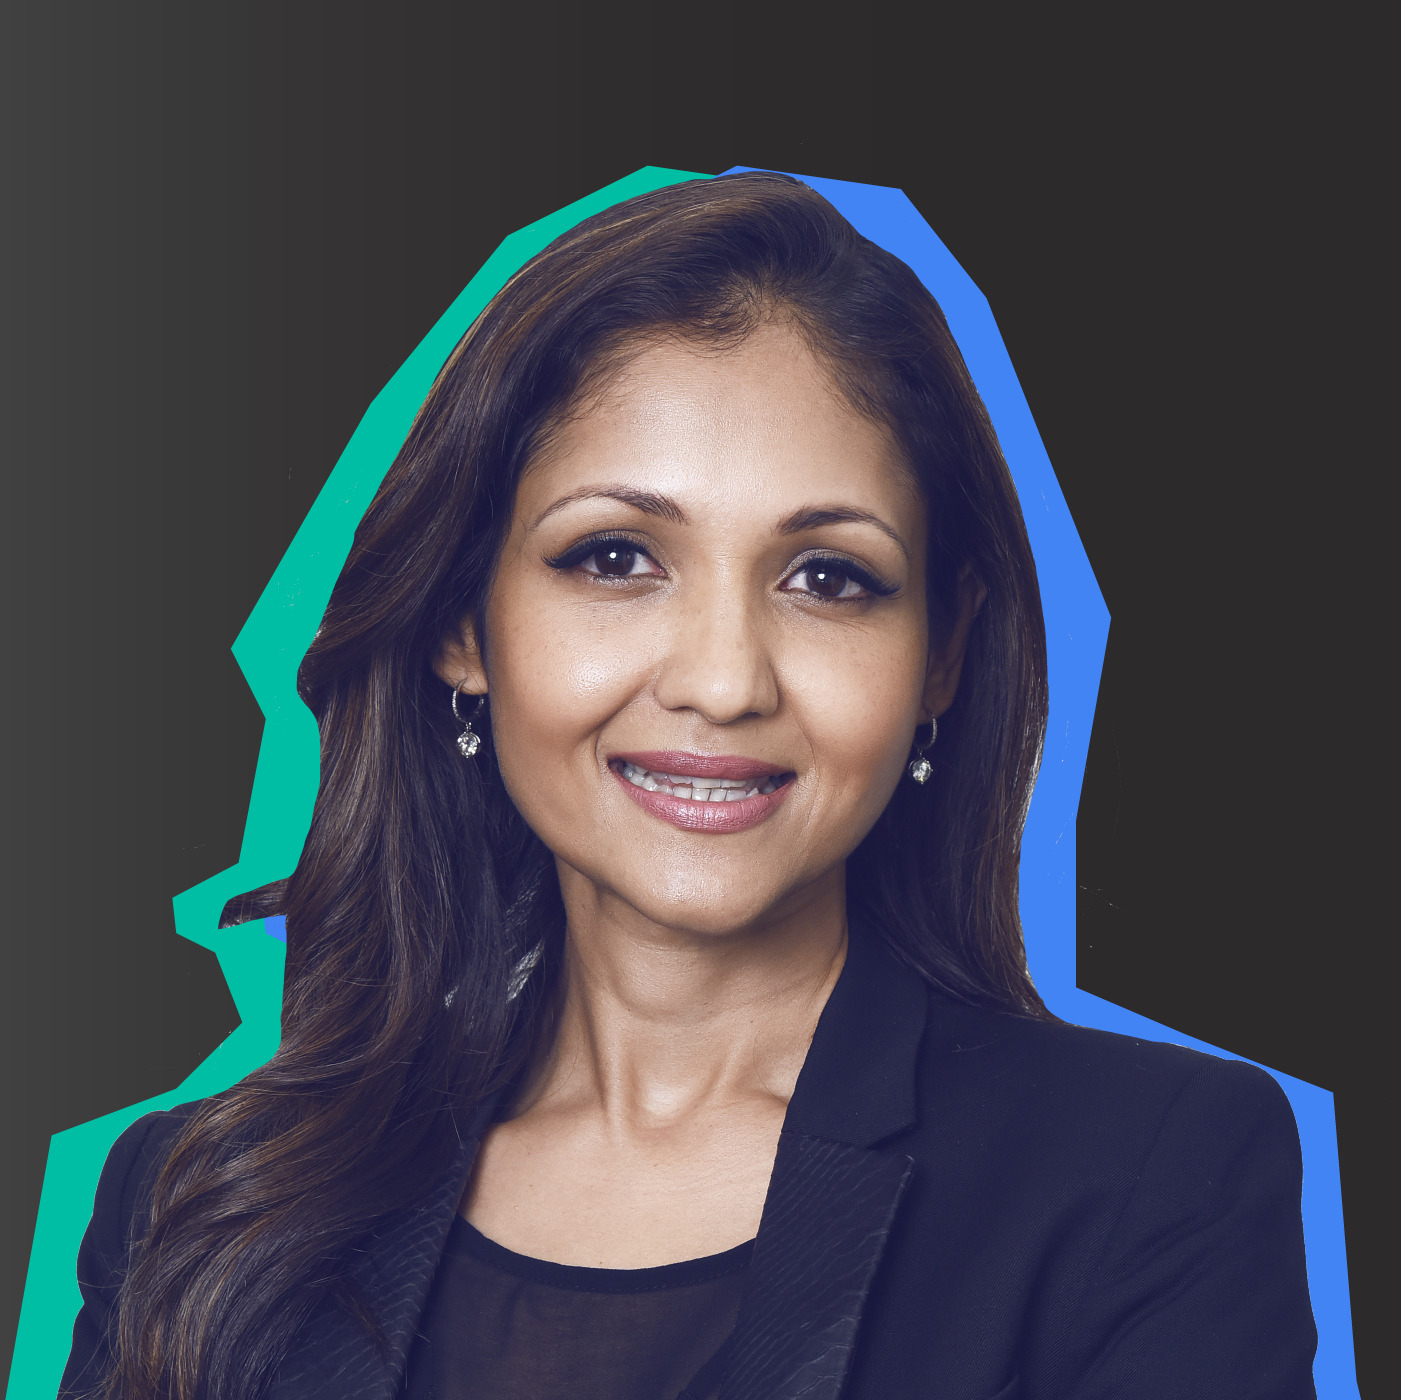 Dr. Naidoo, CEO and co-founder of Envisionit Deep AI